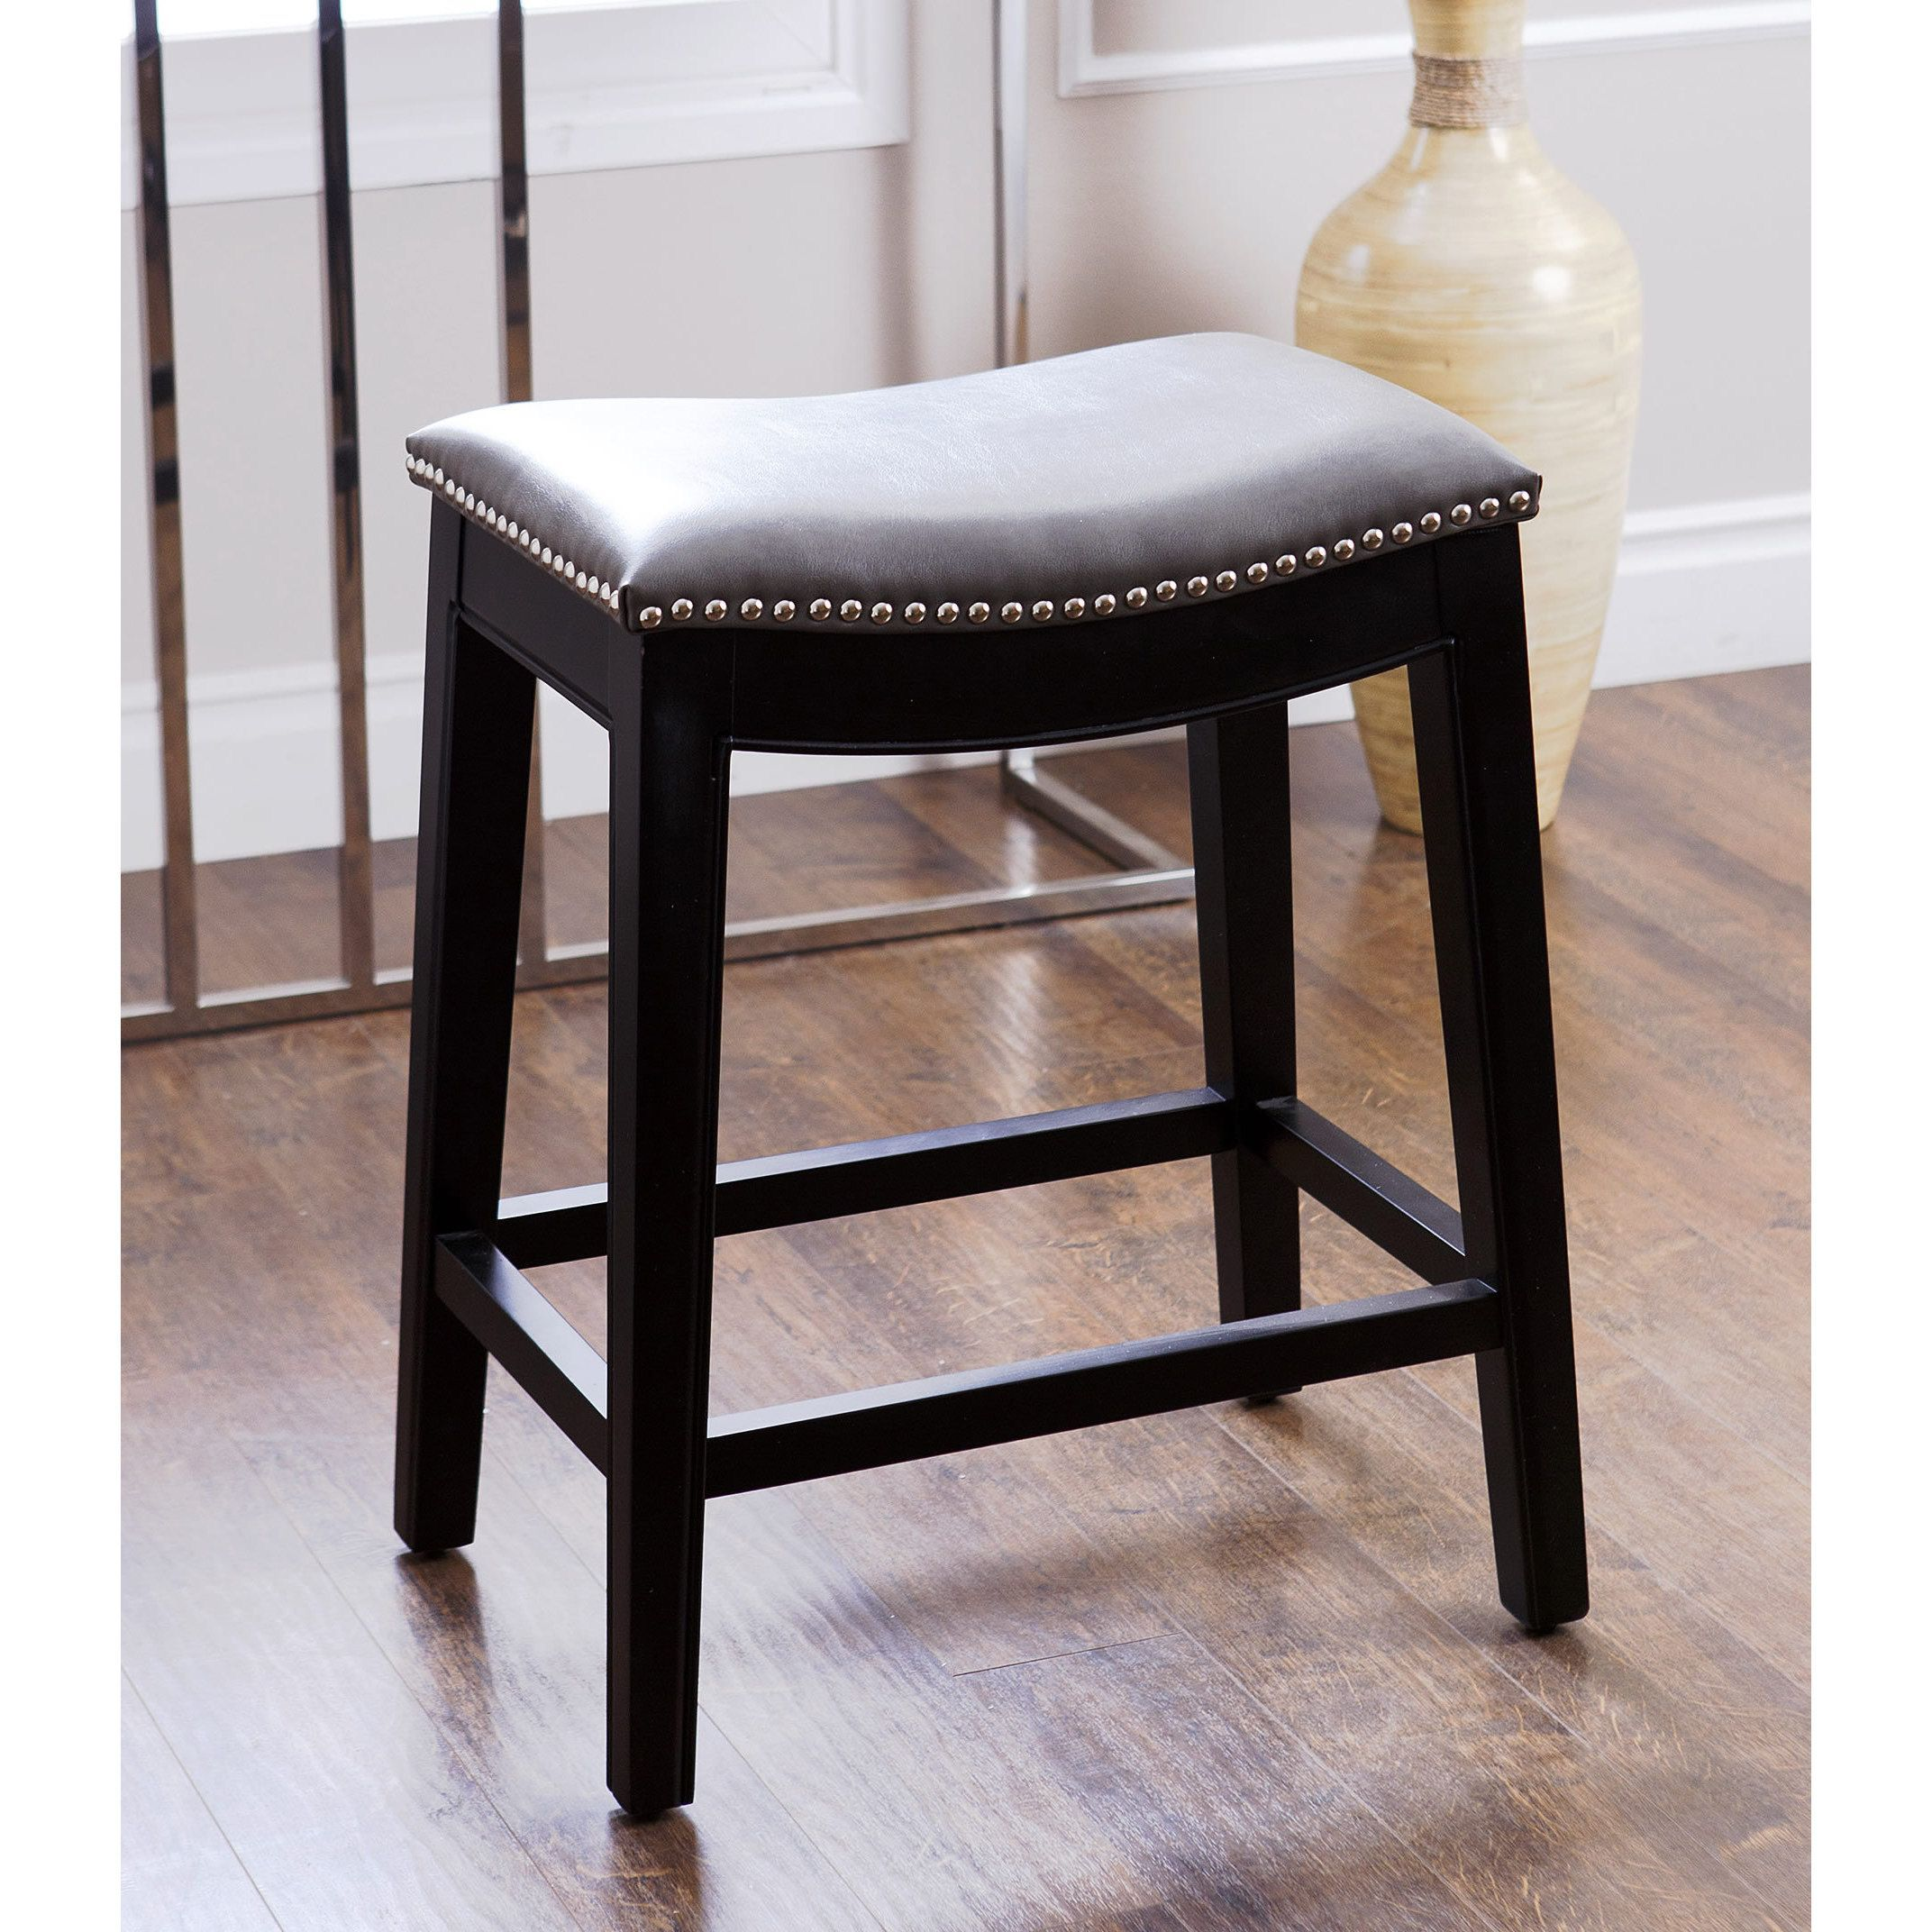 Phenomenal Abbyson Rivoli Grey Leather Nailhead Trim Counter Stool In Uwap Interior Chair Design Uwaporg